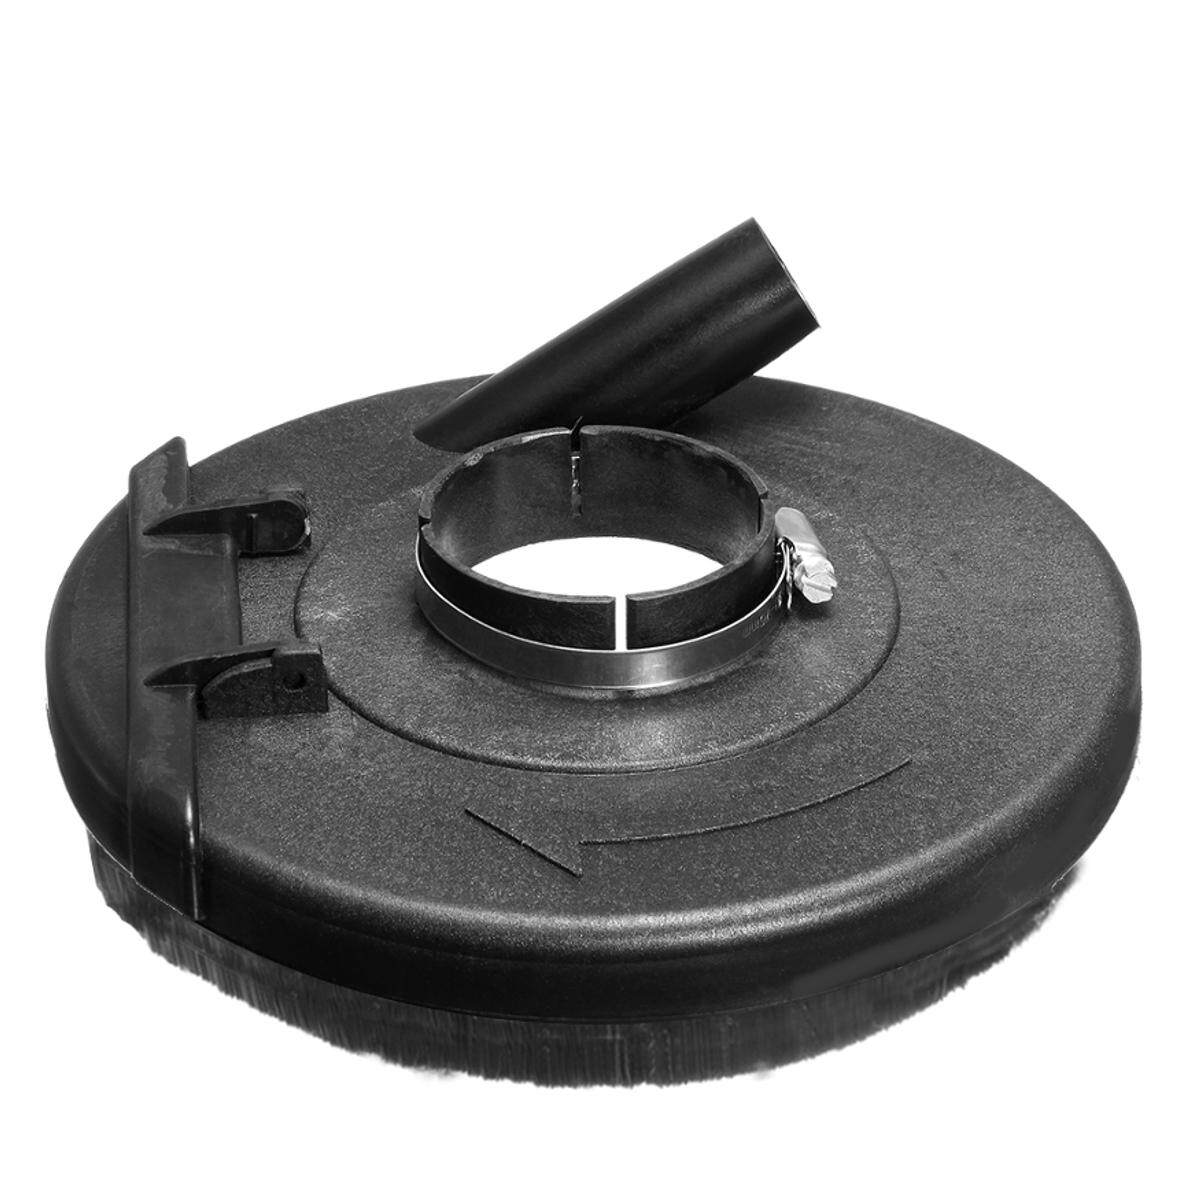 vacuum dust shroud cover for angle grinder hand grinder convertible High 1# 38mm(1.5)